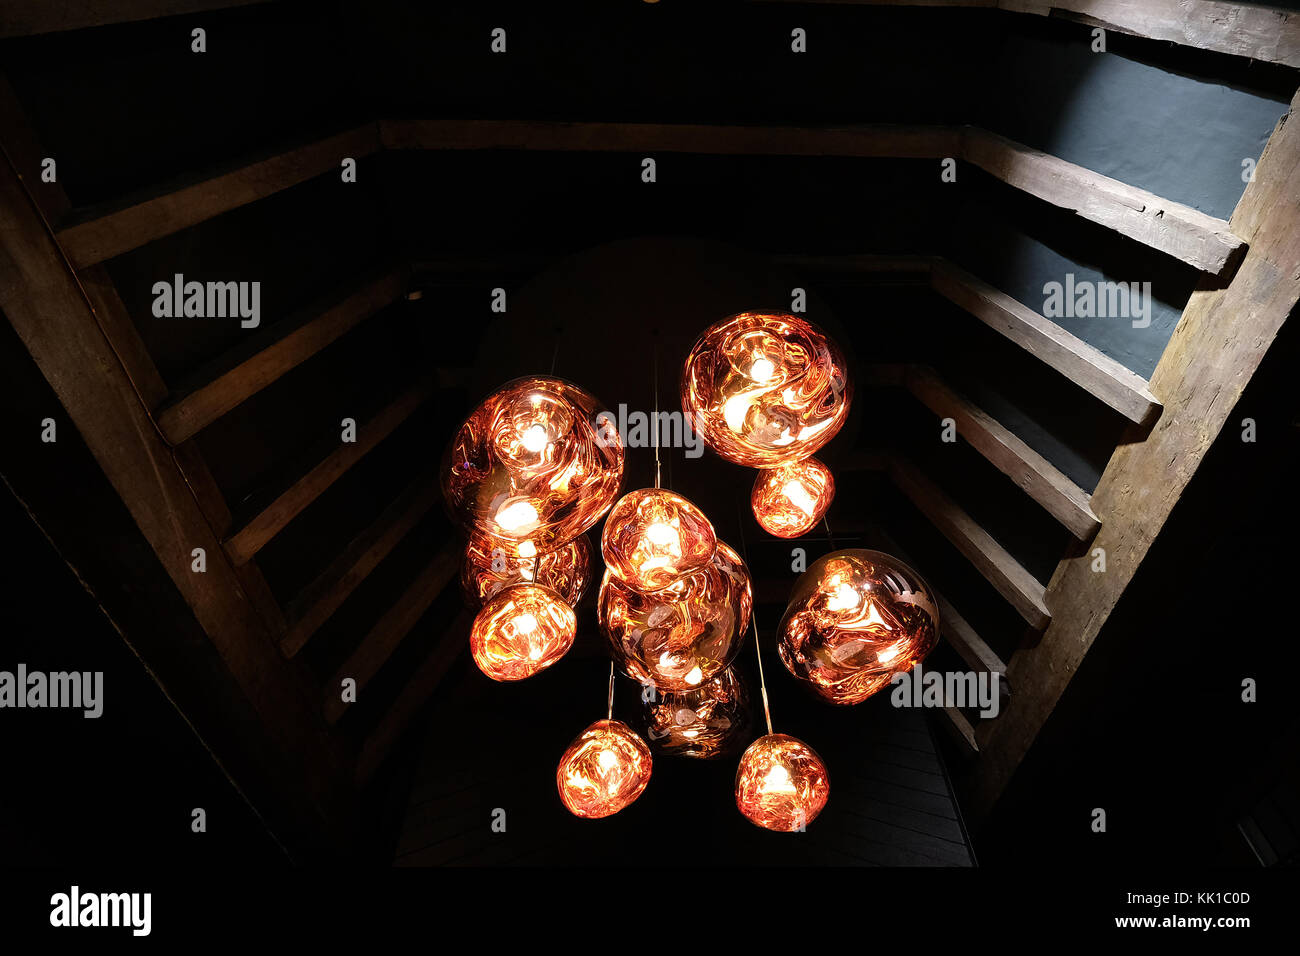 Tom Dixon copper colour 'Melt' pendant lights hanging in the Liberty of London store, London UK. Photographed November Stock Photo